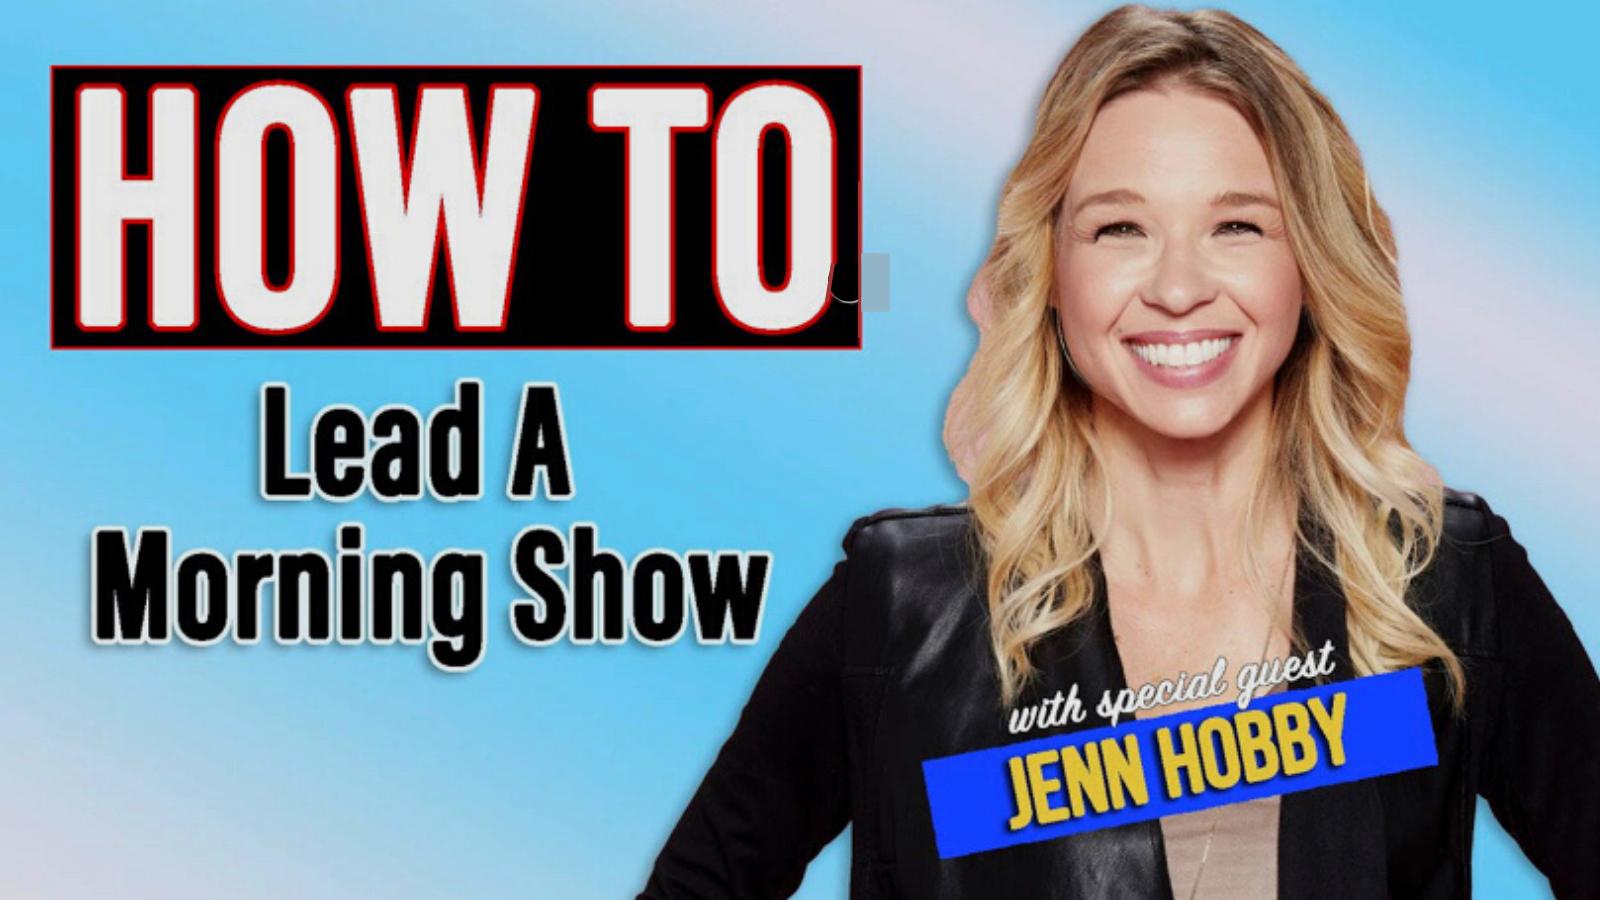 How to Lead a Morning Show